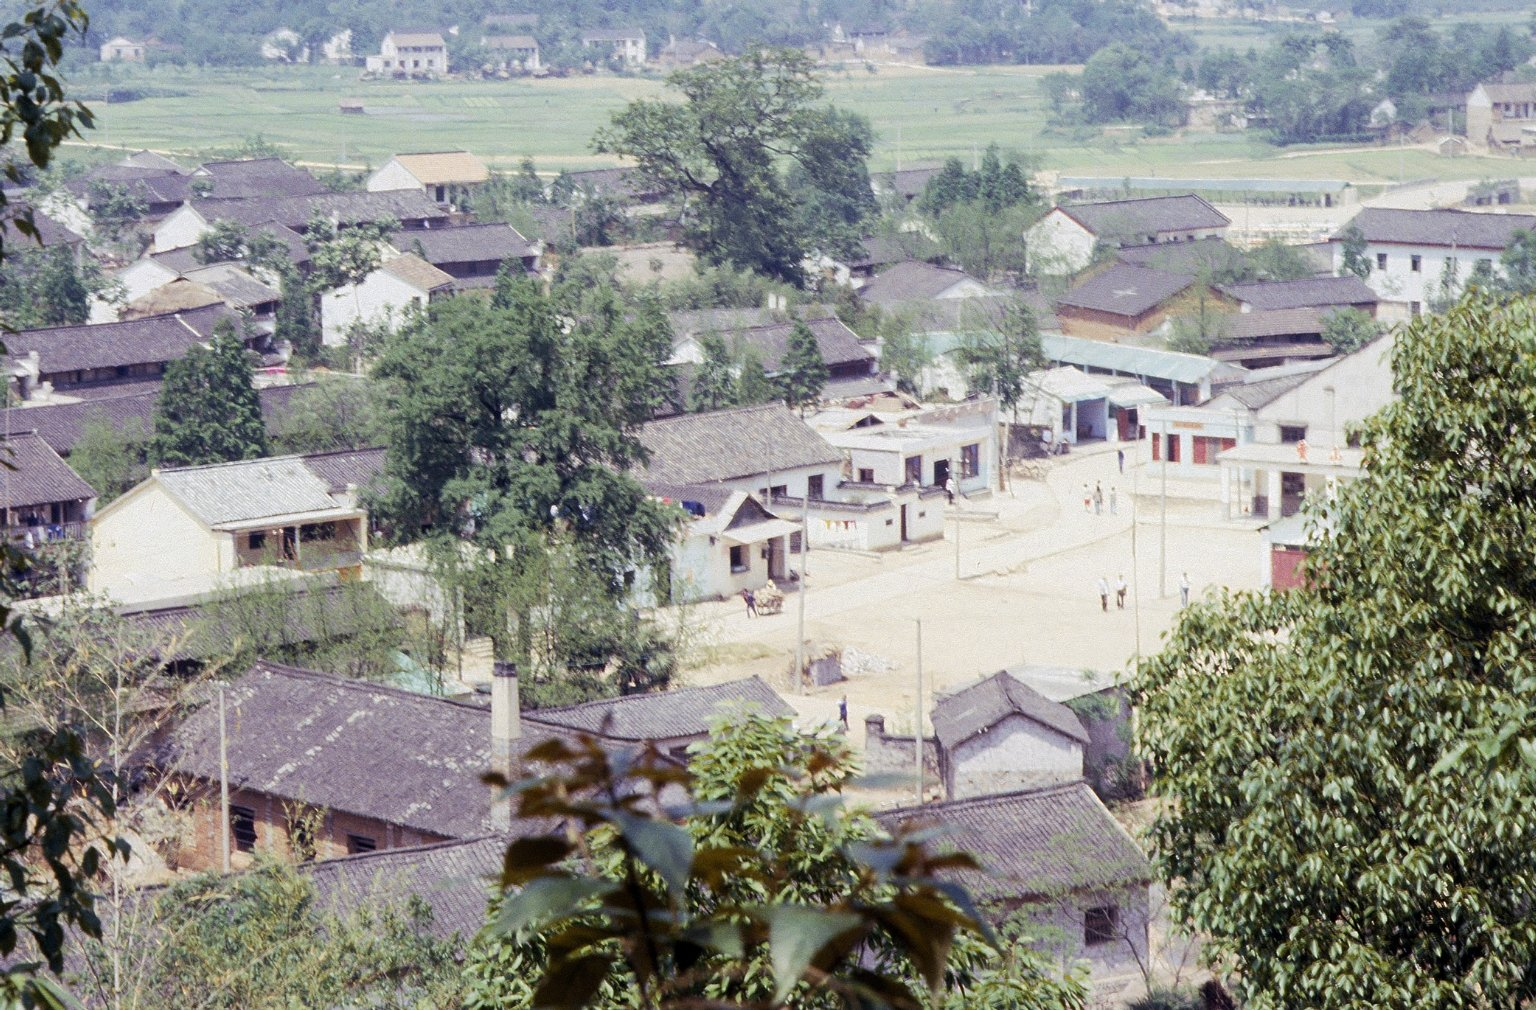 View of Hangzhou Villages